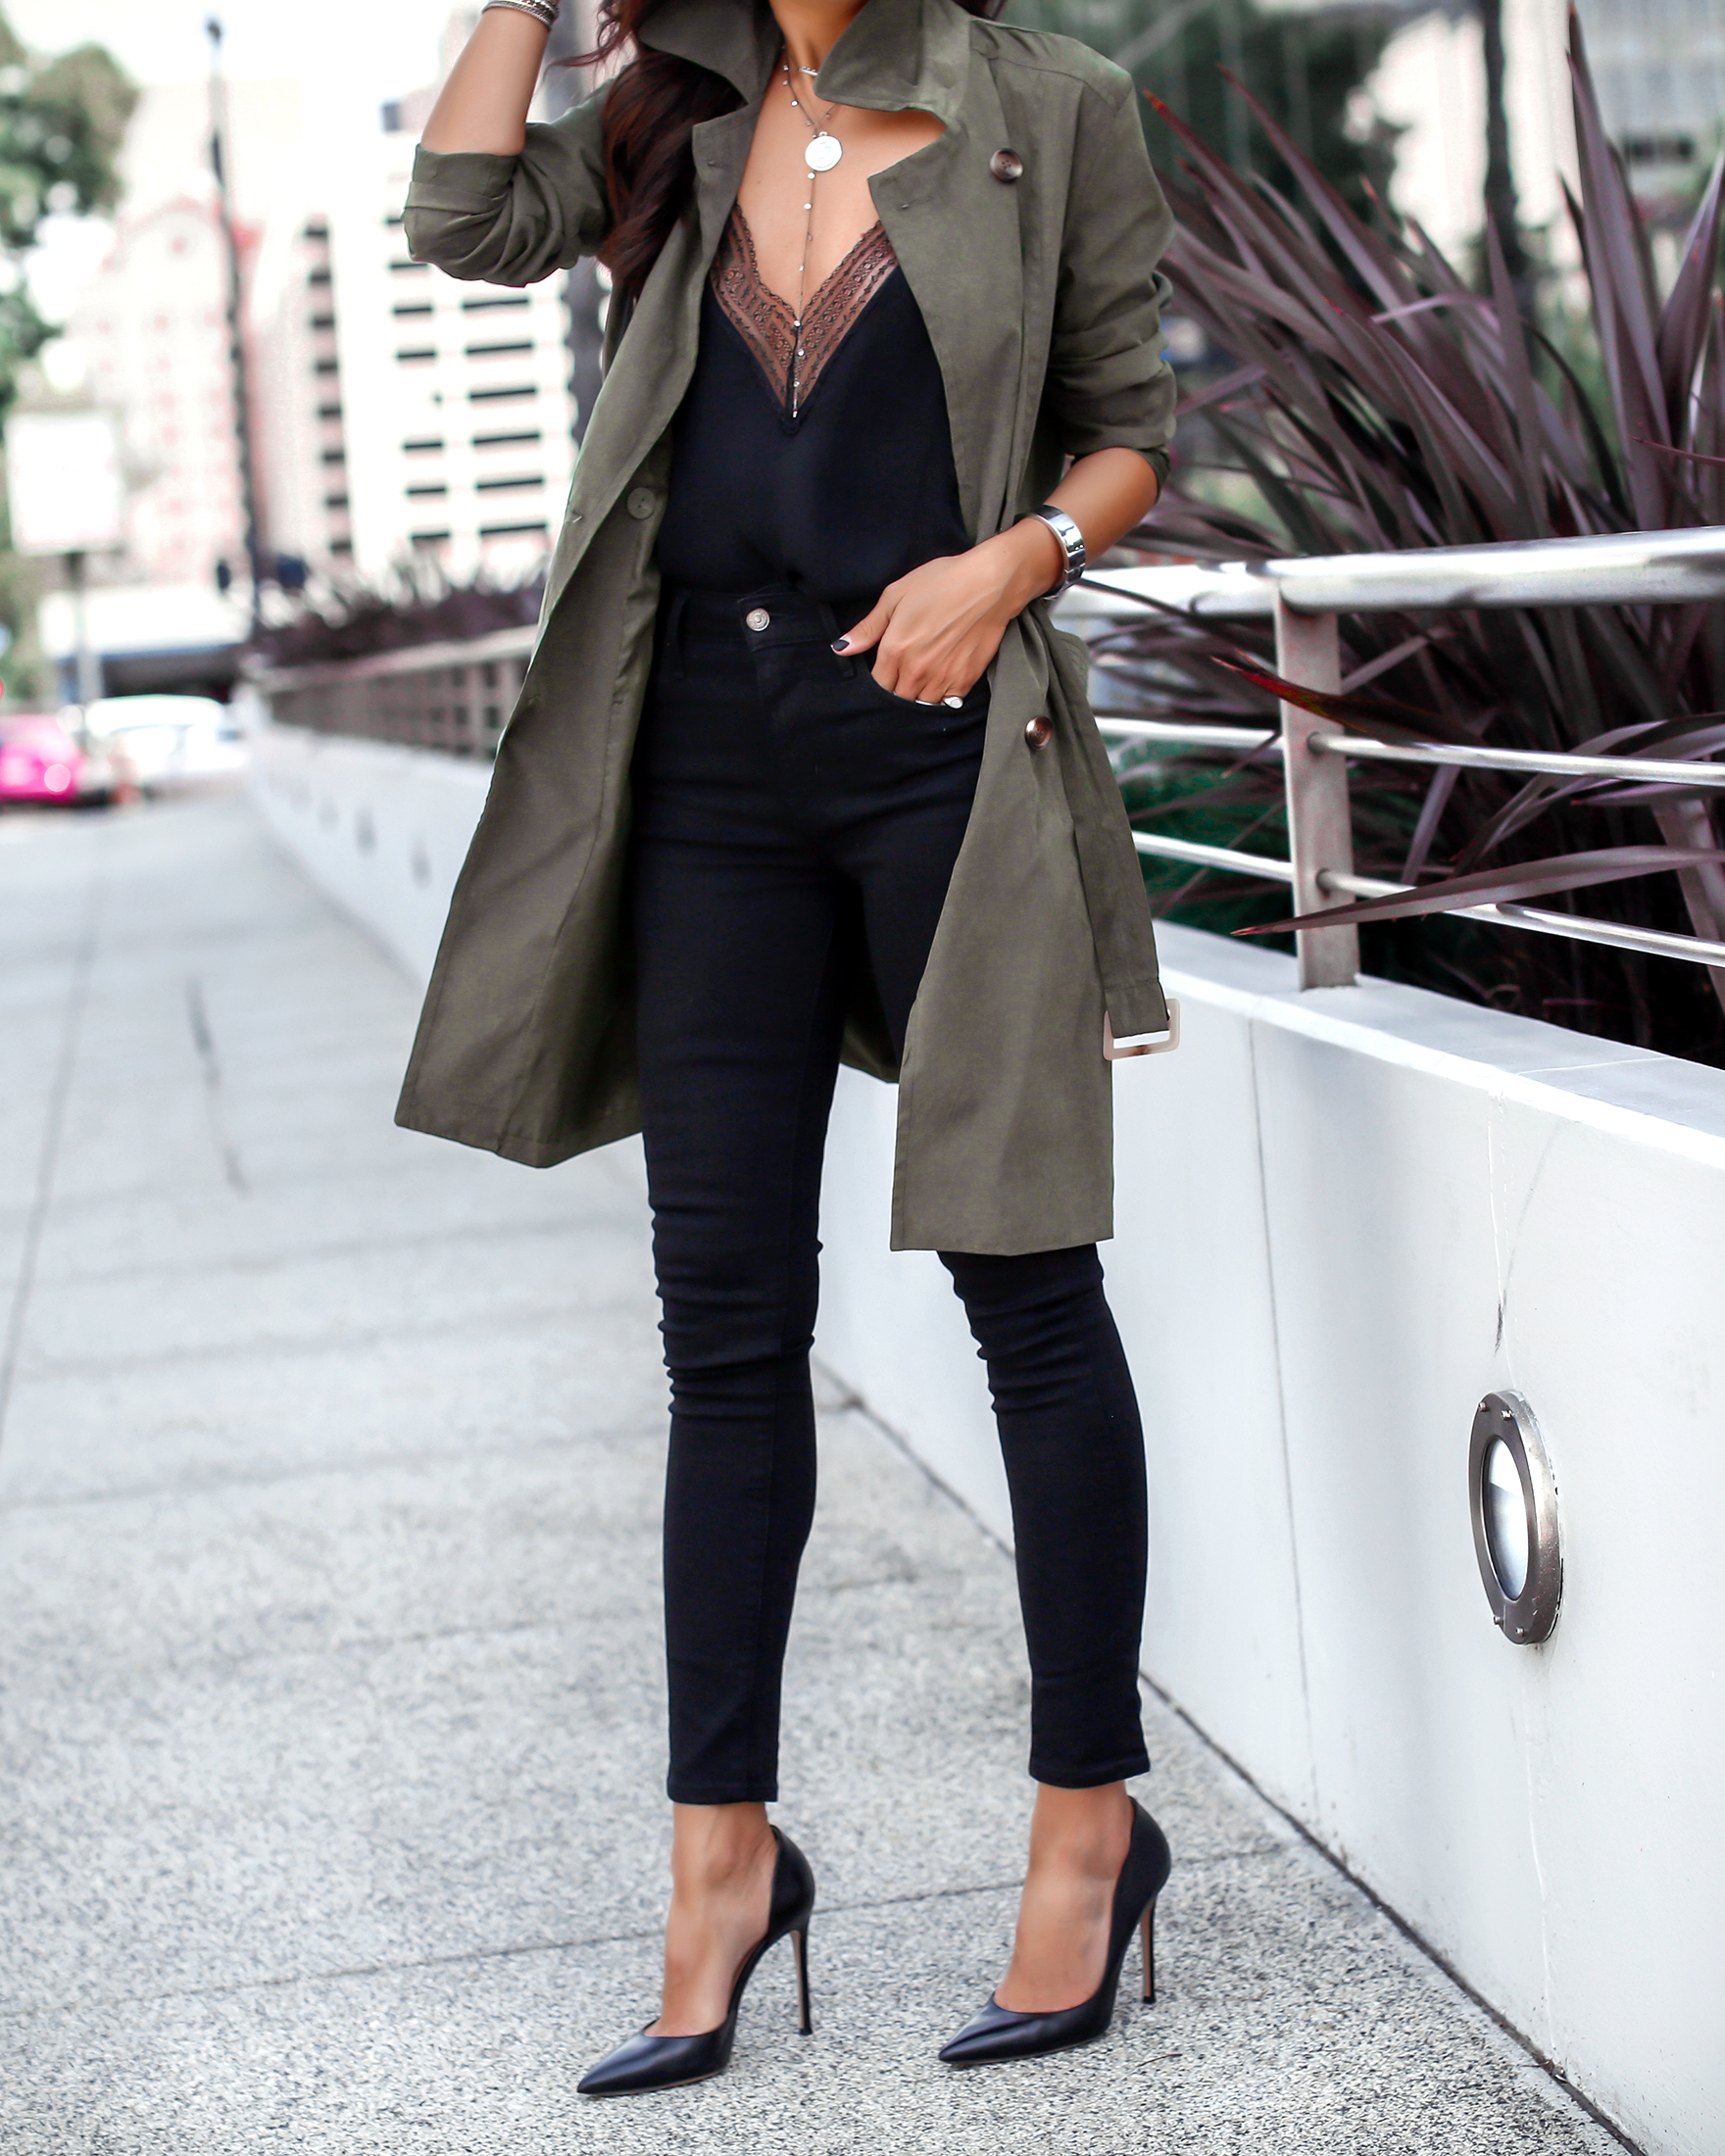 Brunette Woman in Trench and Heels